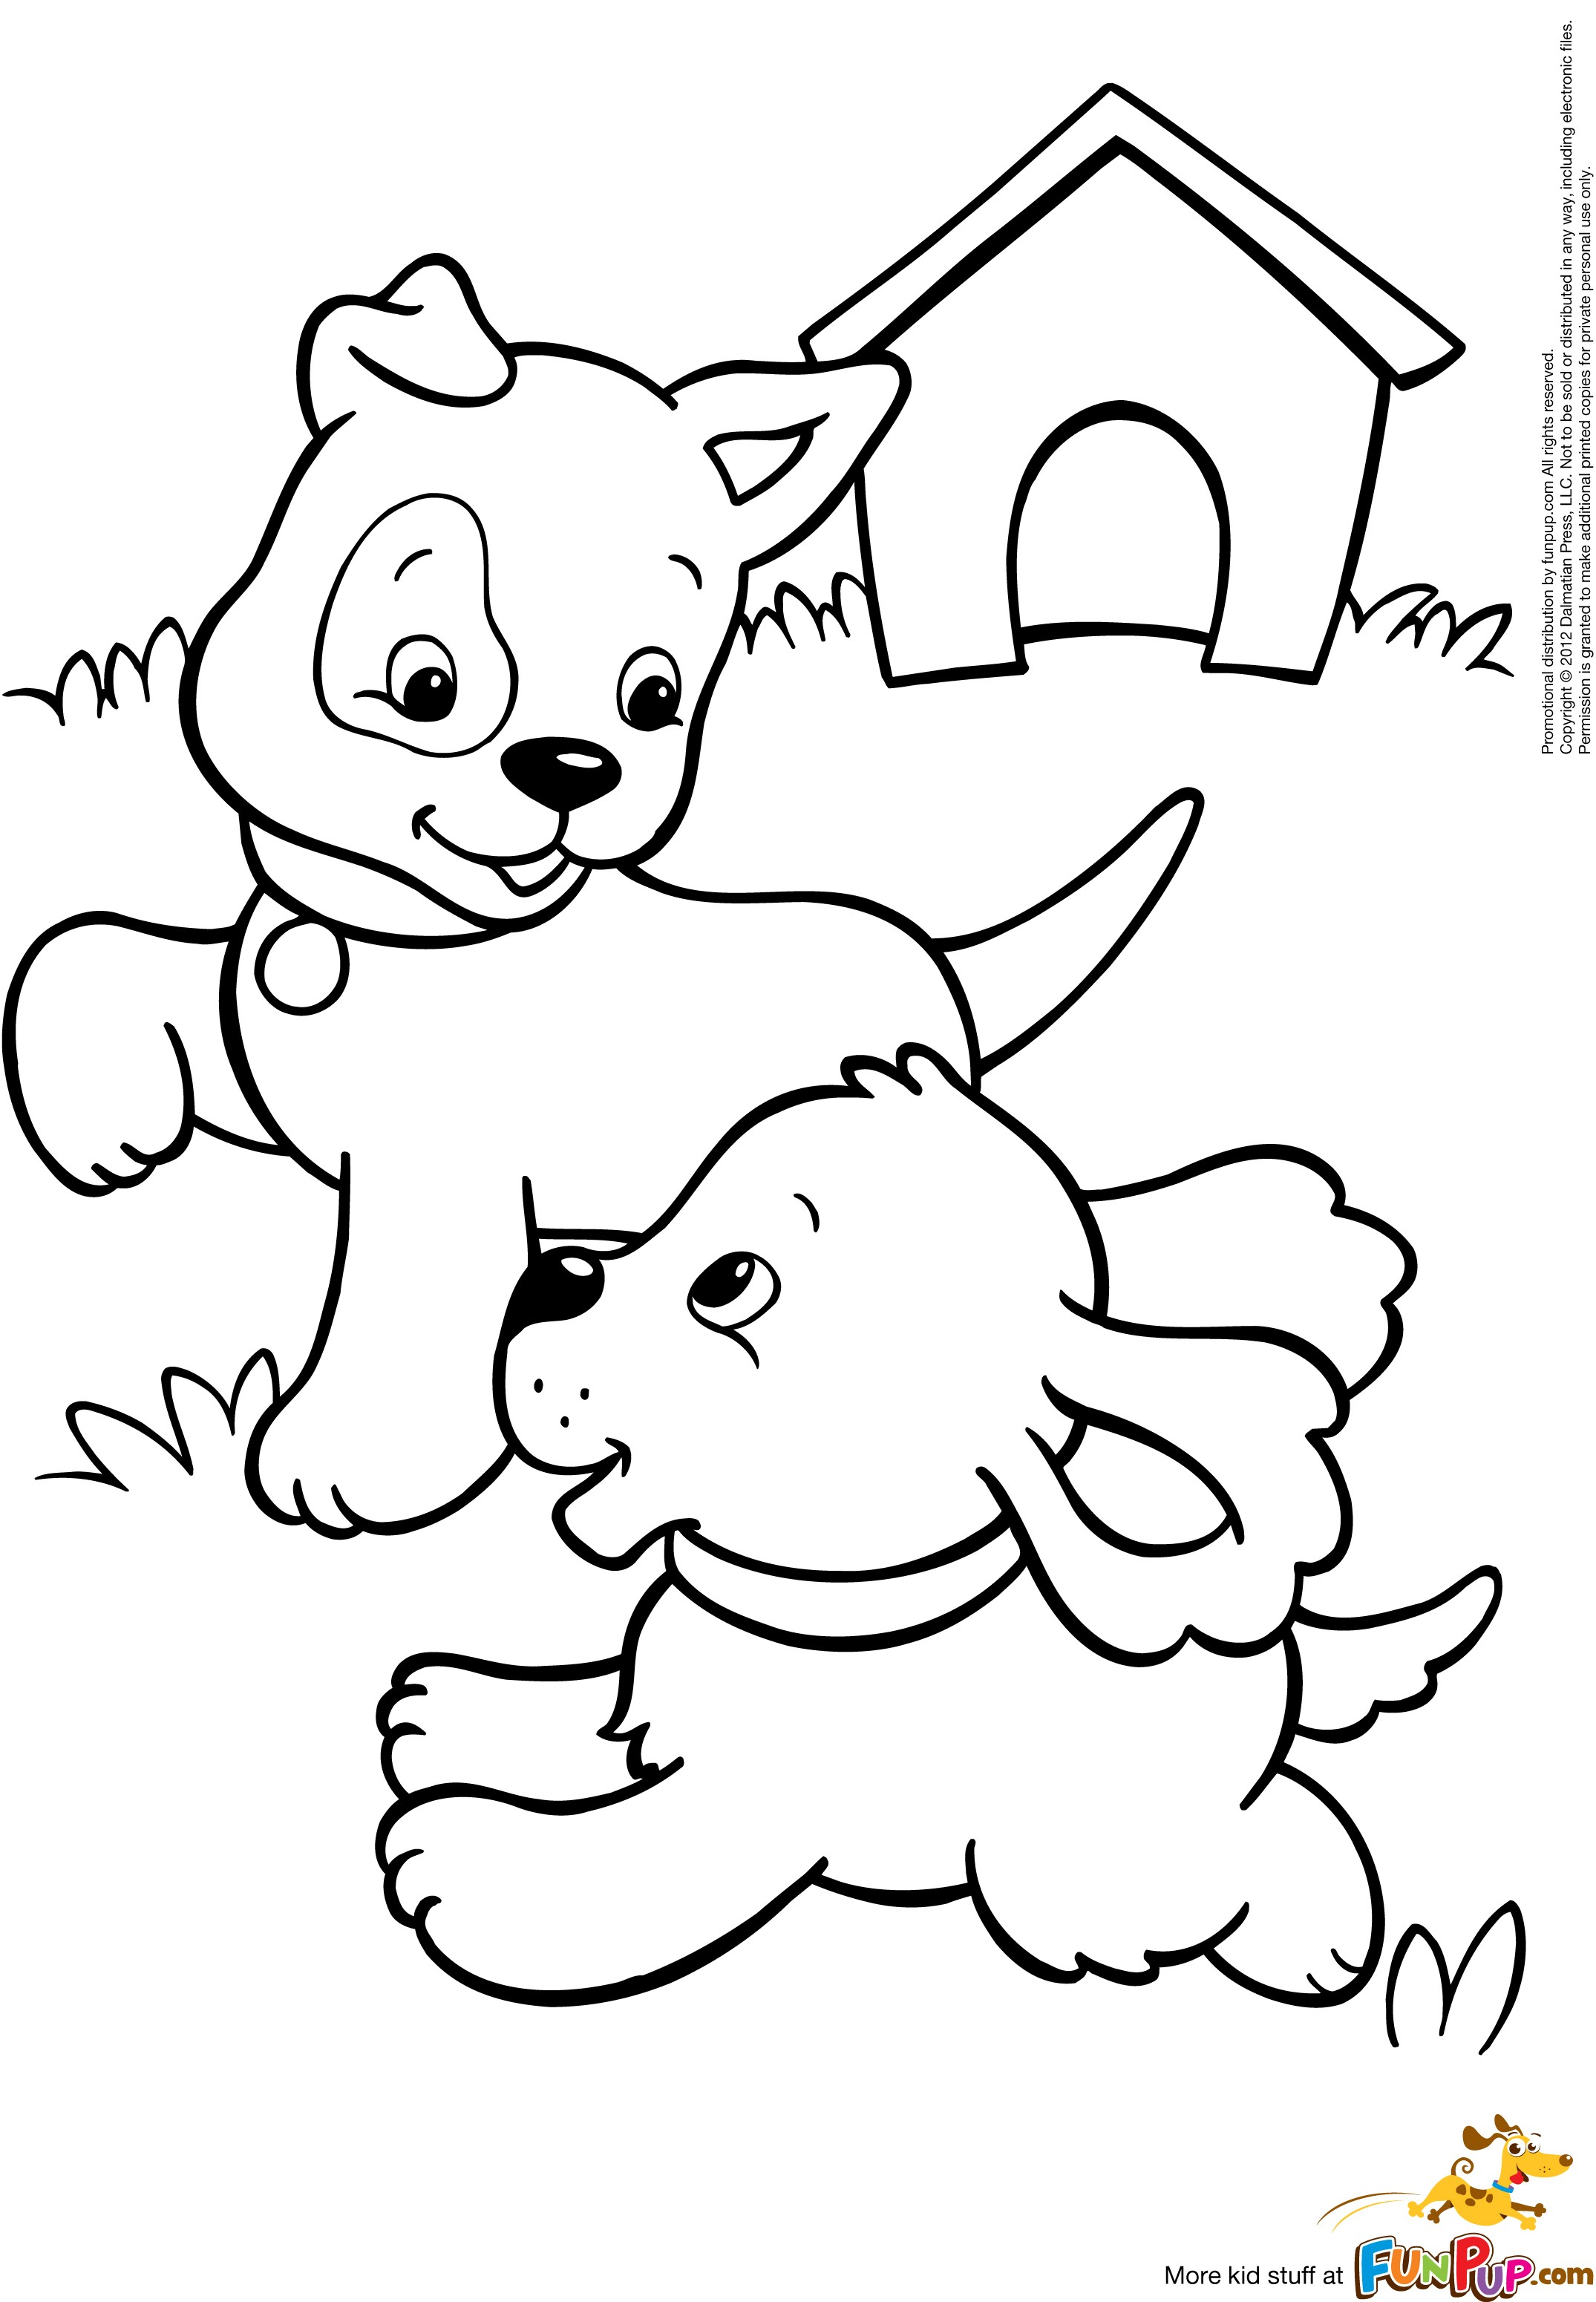 free printable dog coloring pages animal coloring pages momjunction free pages printable dog coloring